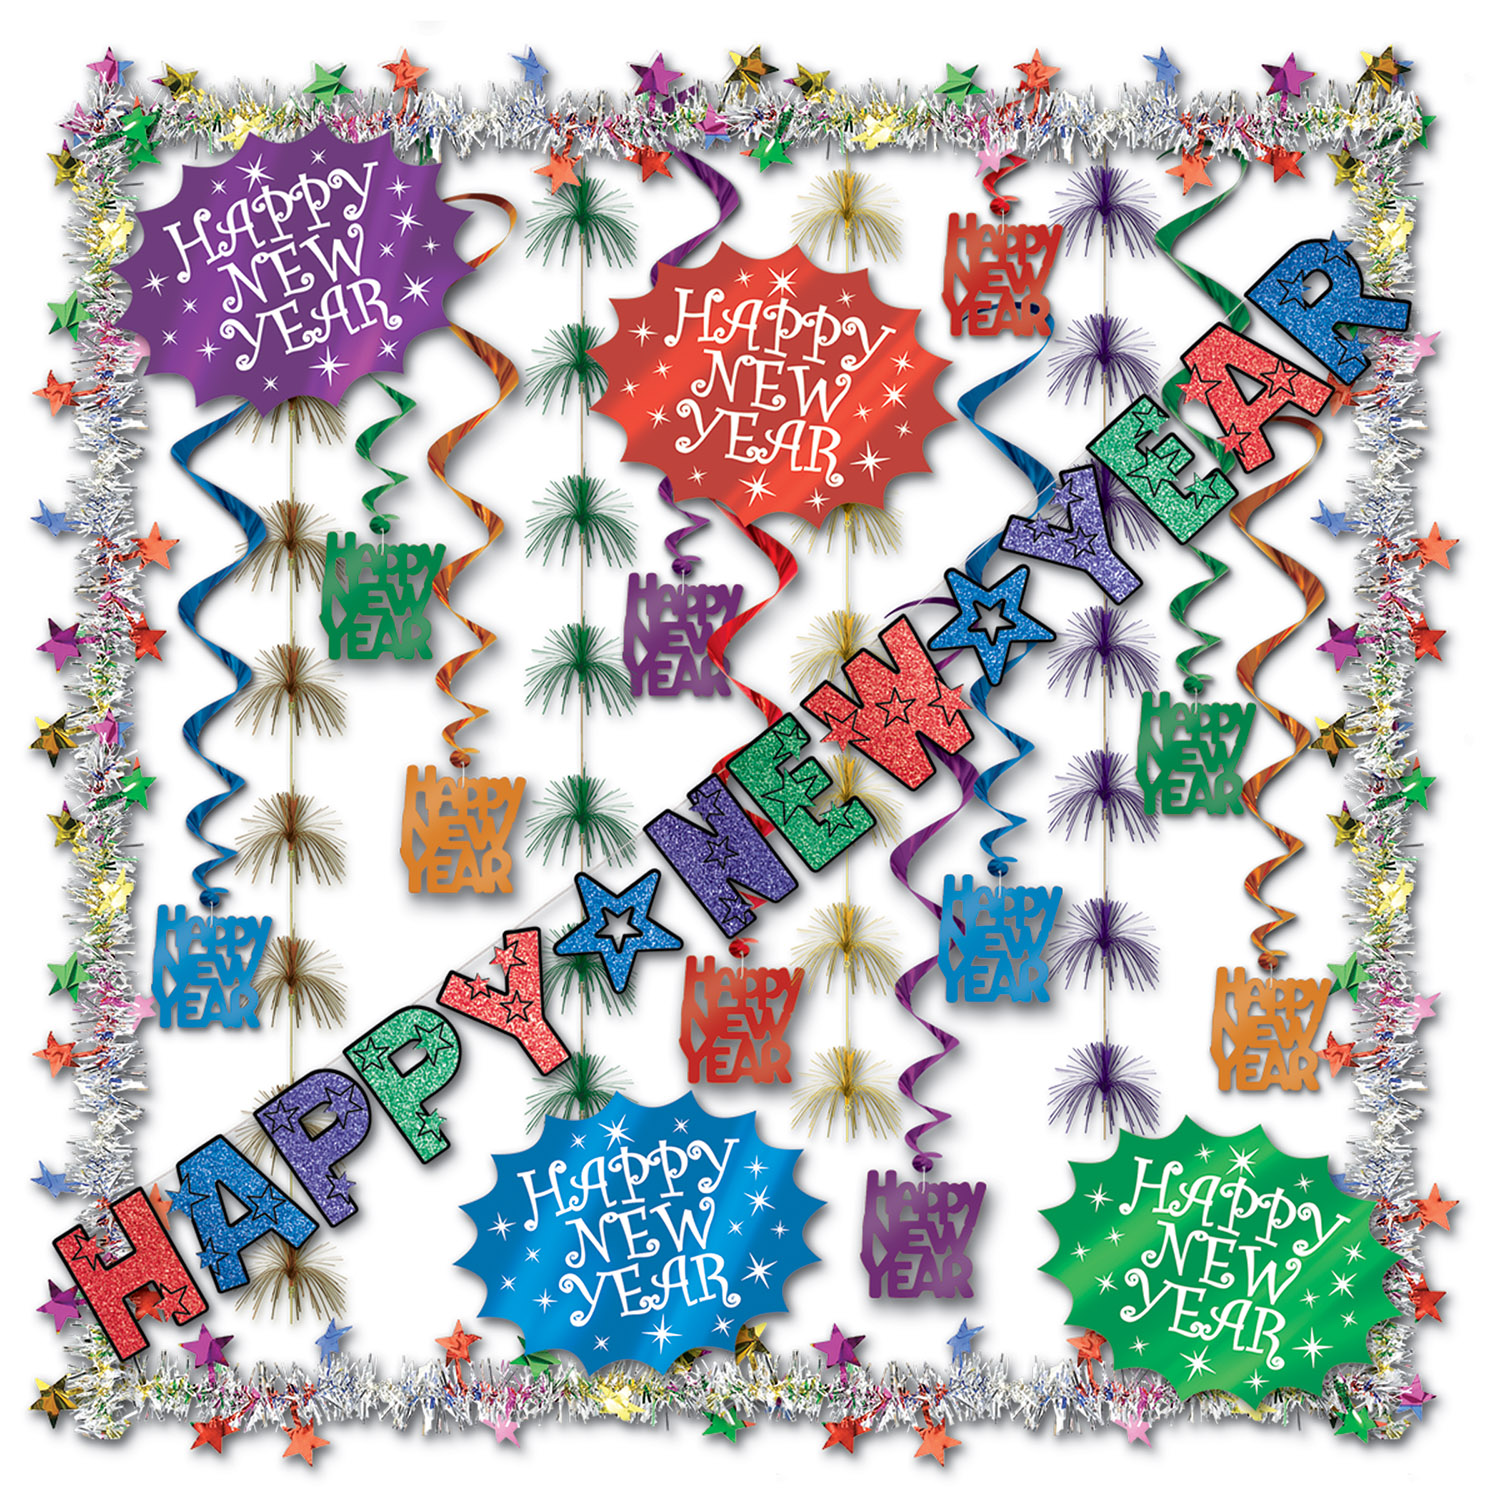 New Year Decorating Kit - 23 Ct